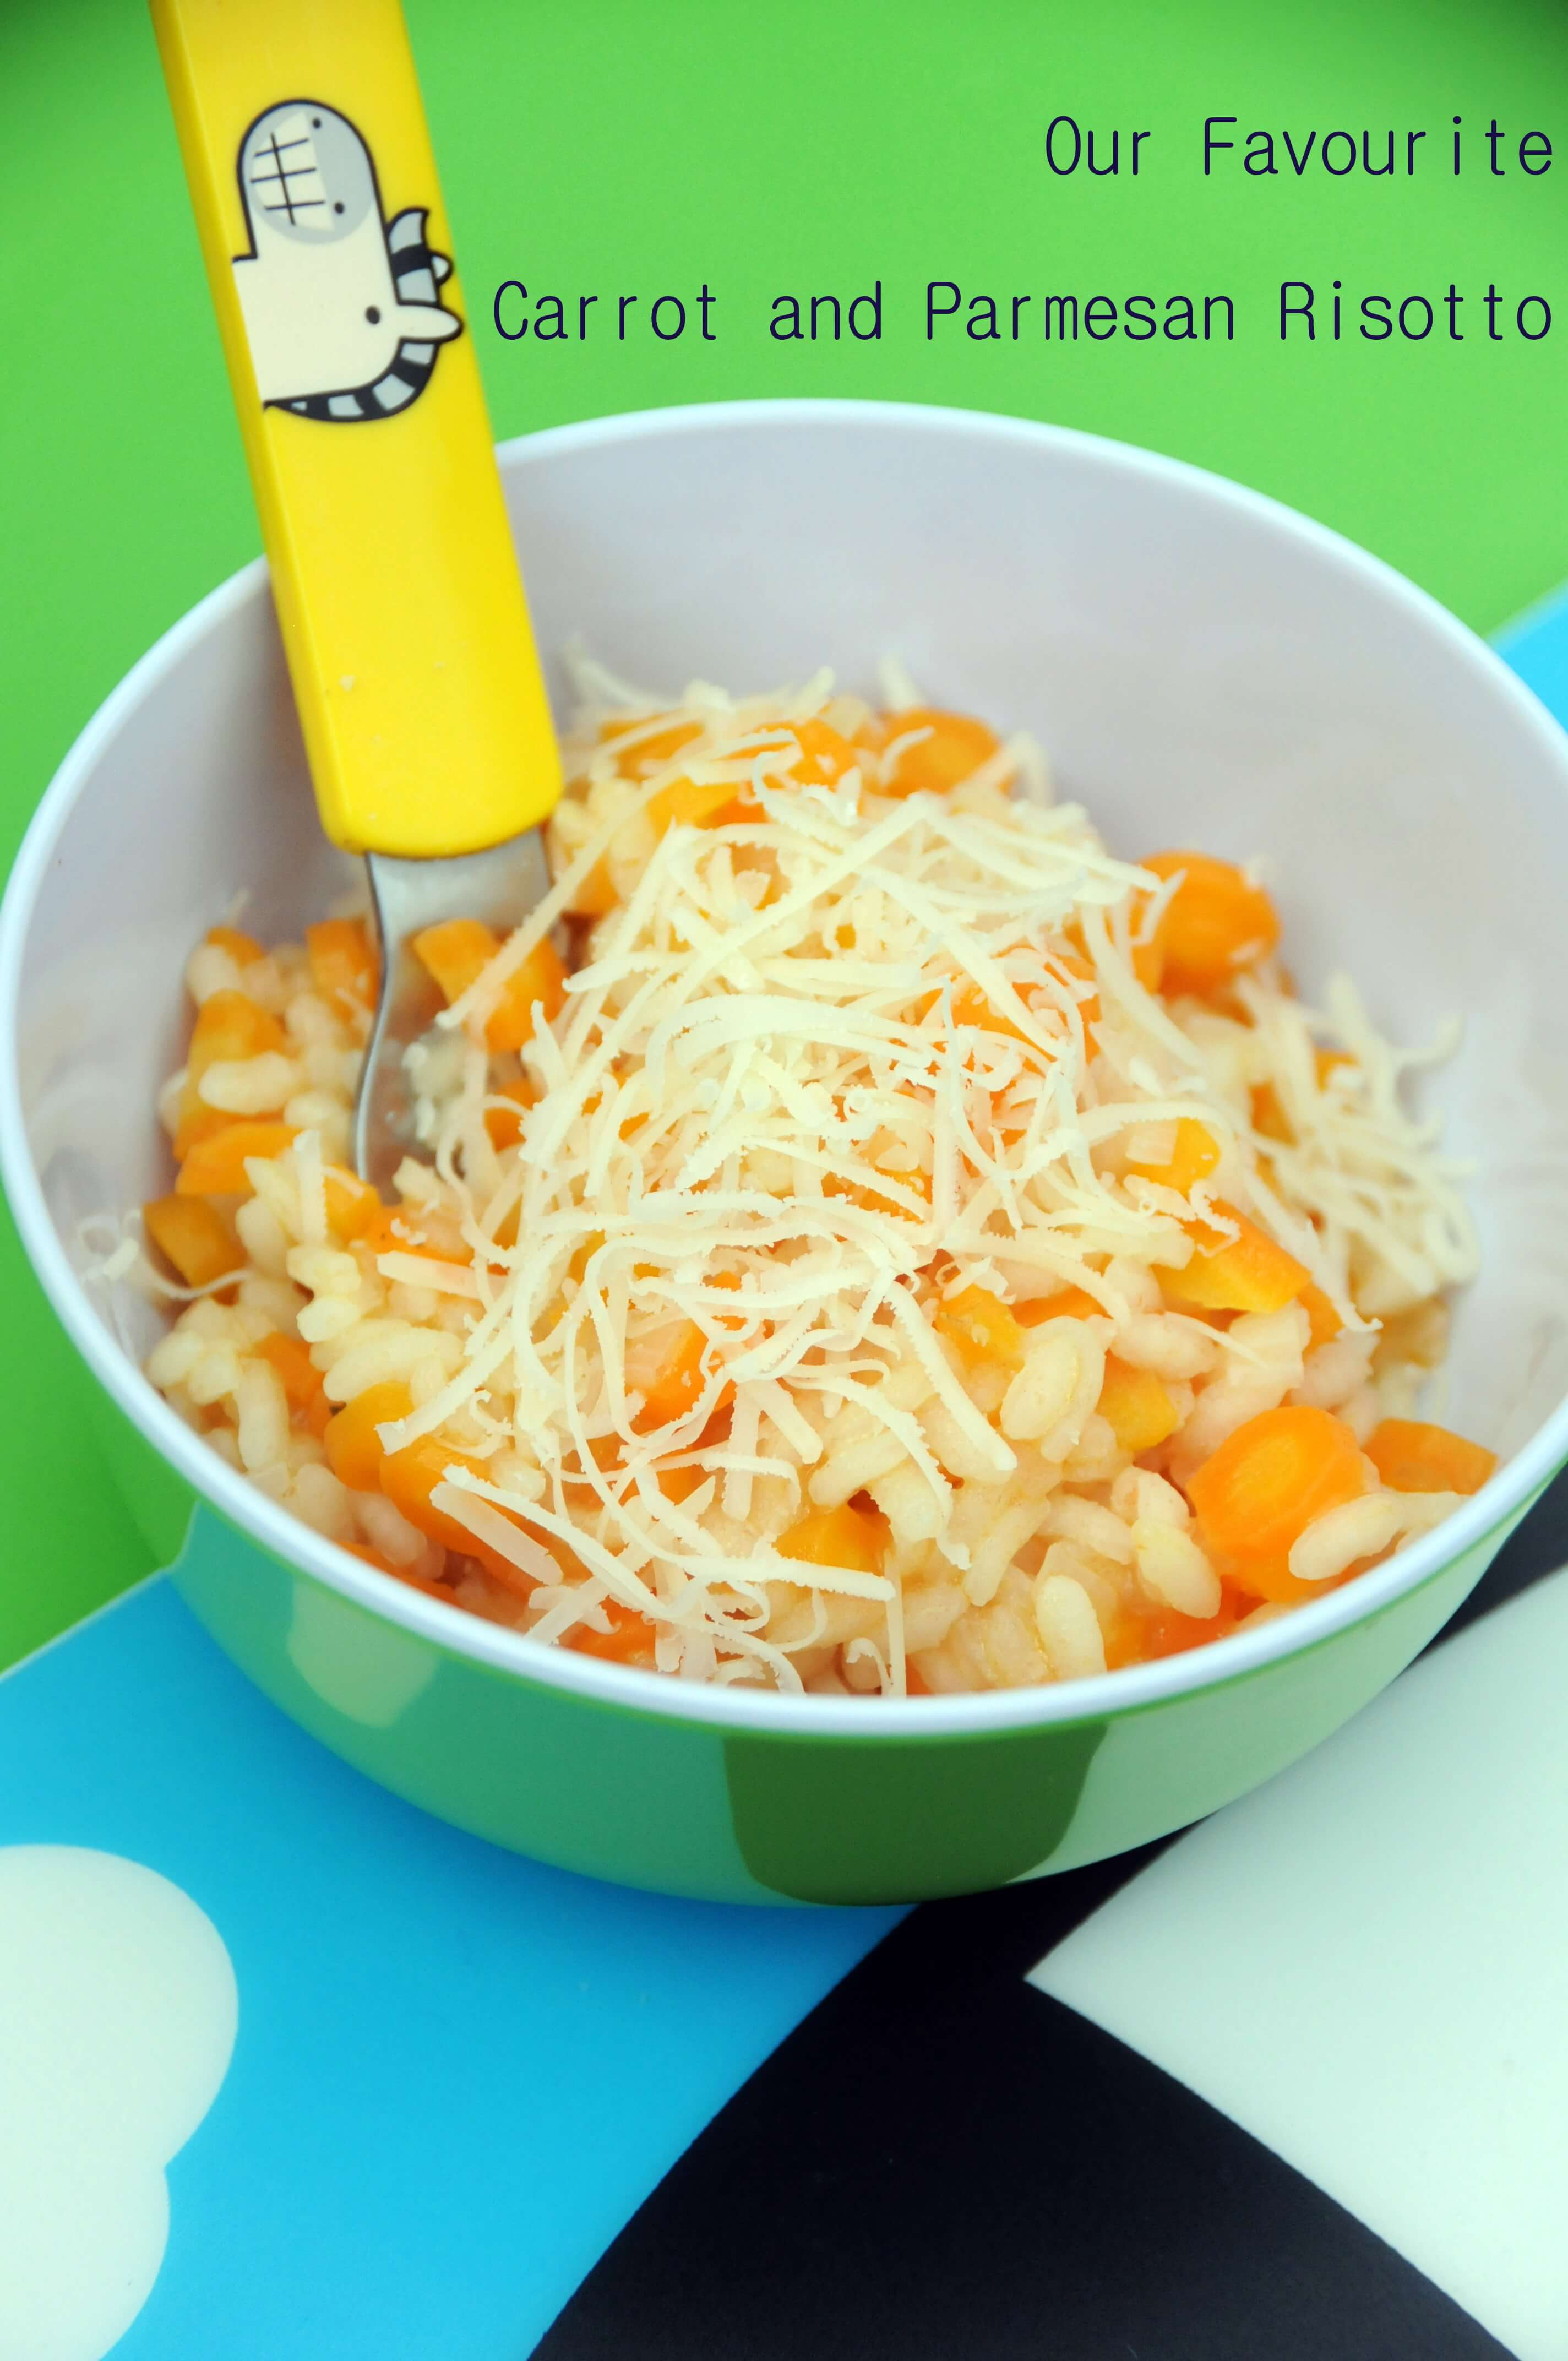 Our Favourite Carrot and Parmesan Risotto - Ren Behan Food